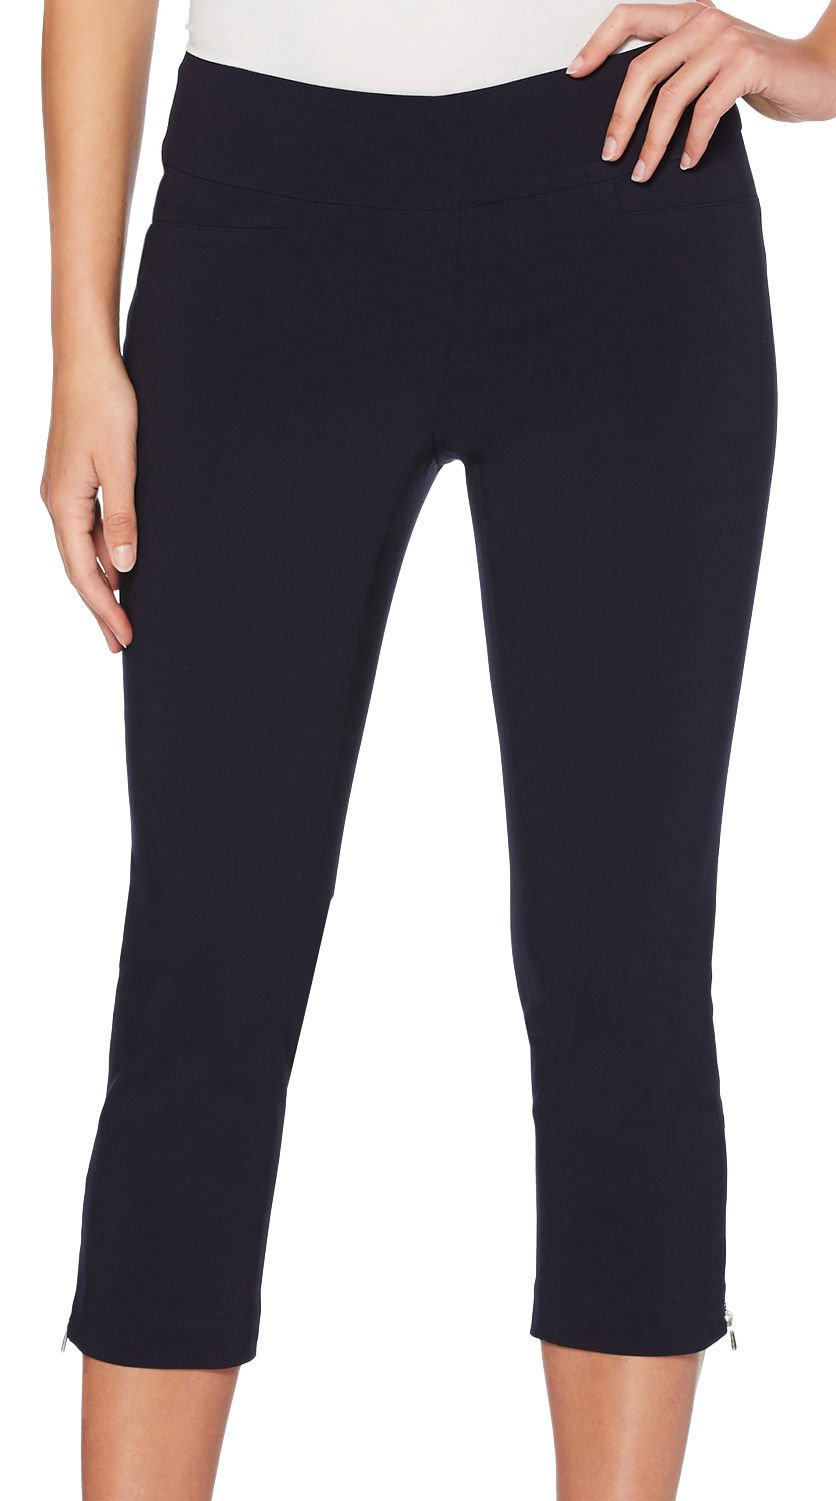 Rafaella Women's Petite Supreme Stretch Capri, Navy, 8P